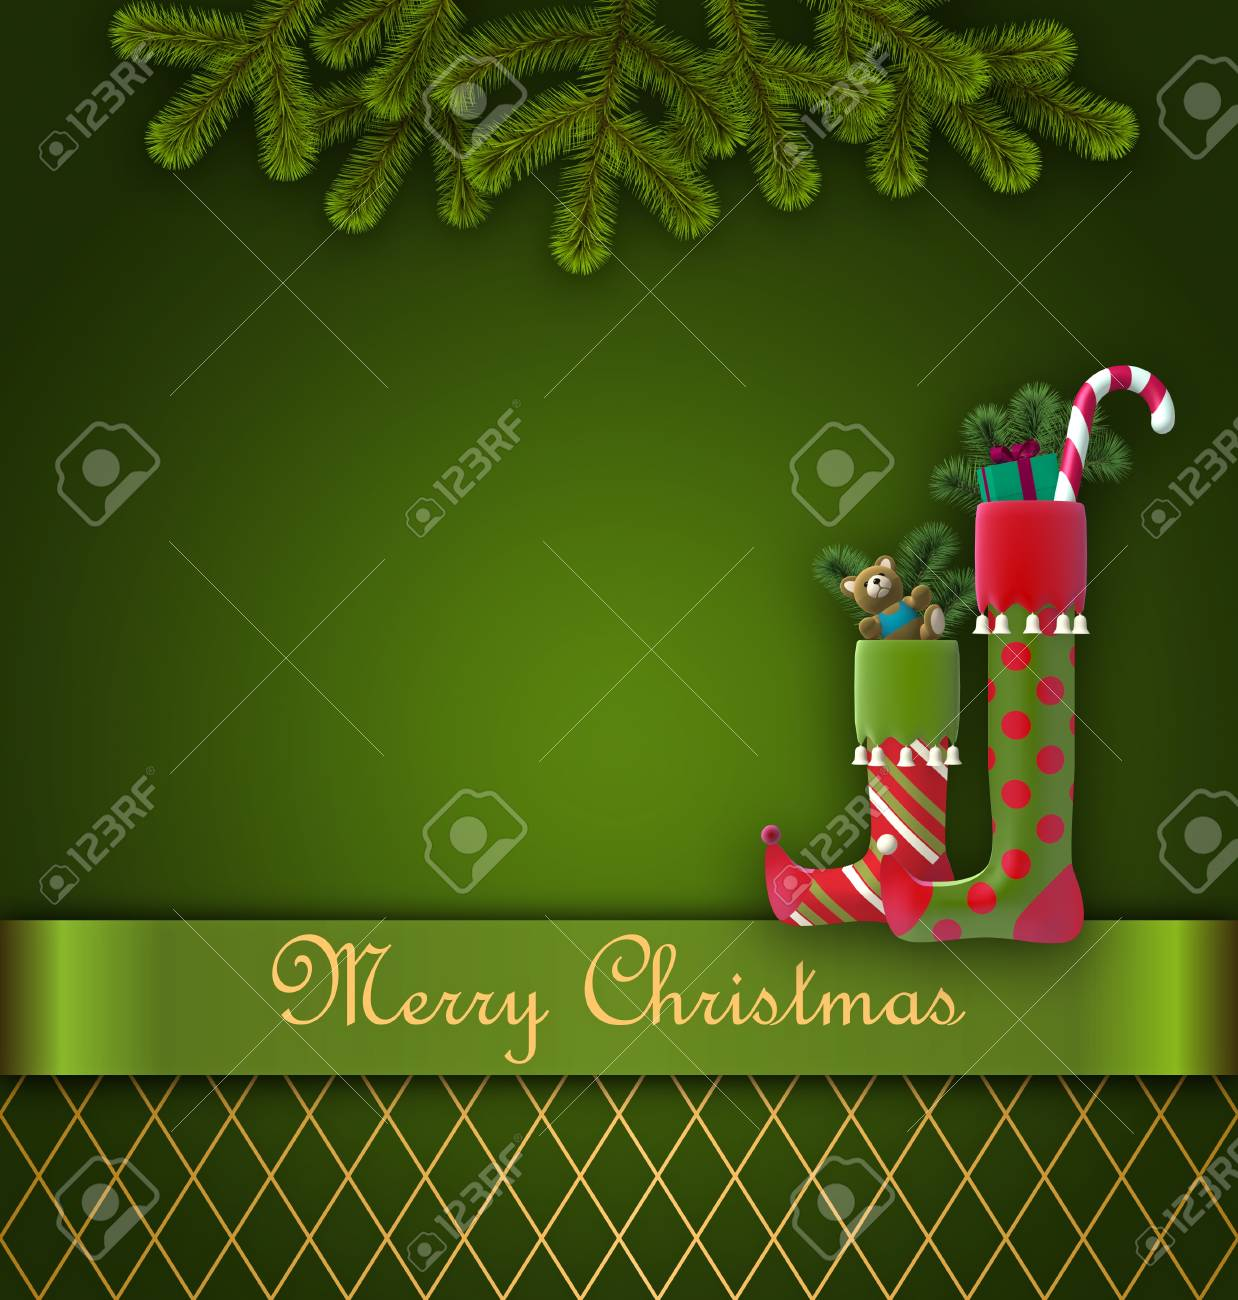 Christmas greeting card decorated with christmas stockings Stock Photo - 16838796